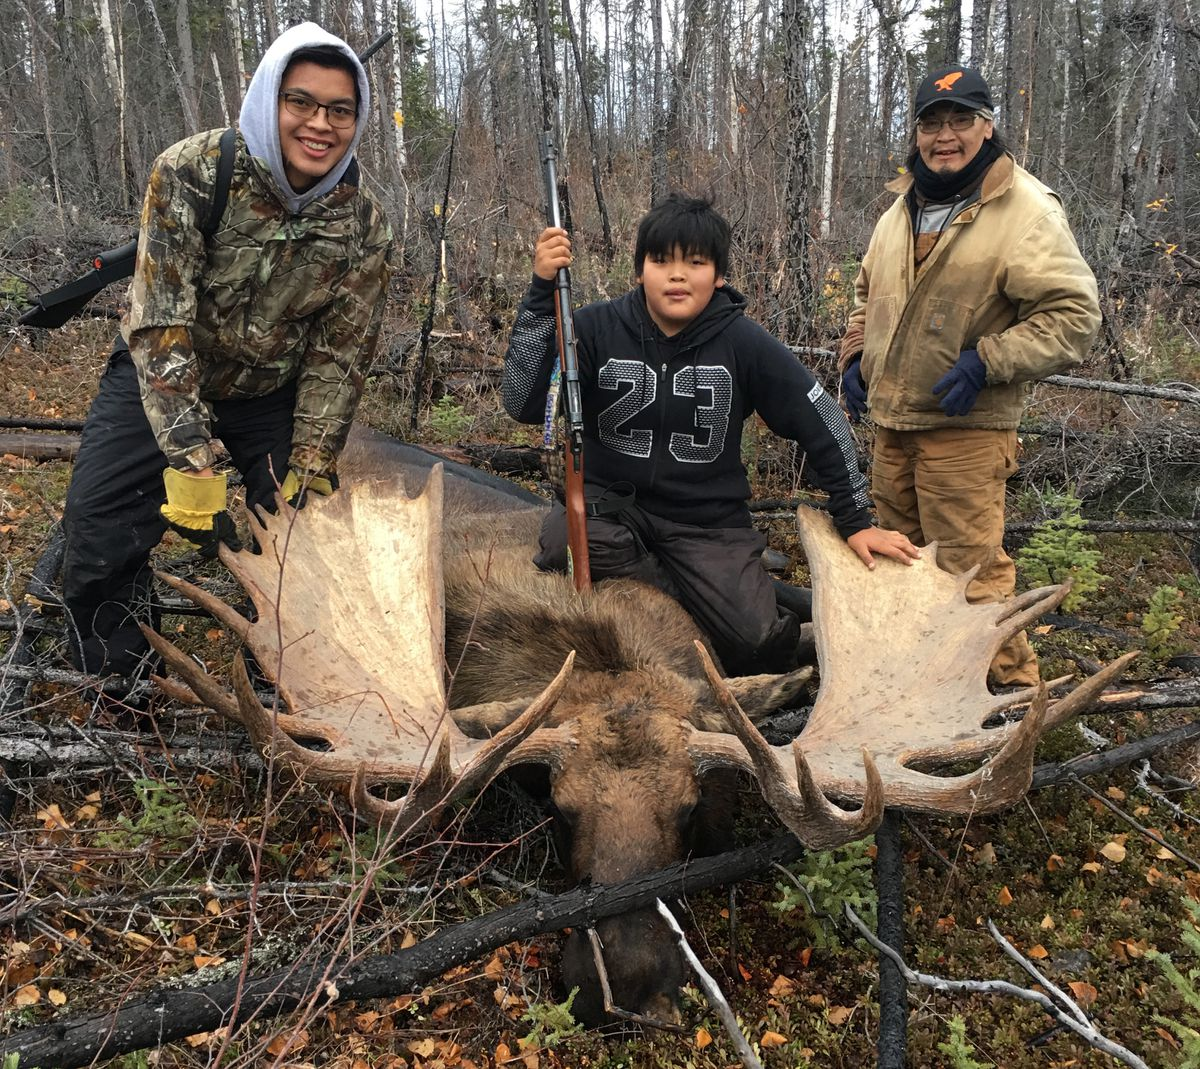 Thomas Bergman, left, Tyler Bergman and their uncle Walter Bergman pose on Sept. 22, 2017, with a big bull moose that Tyler and uncle P.J. Simon shot in an area near the Brooks Range. (Photo by P.J. Simon)